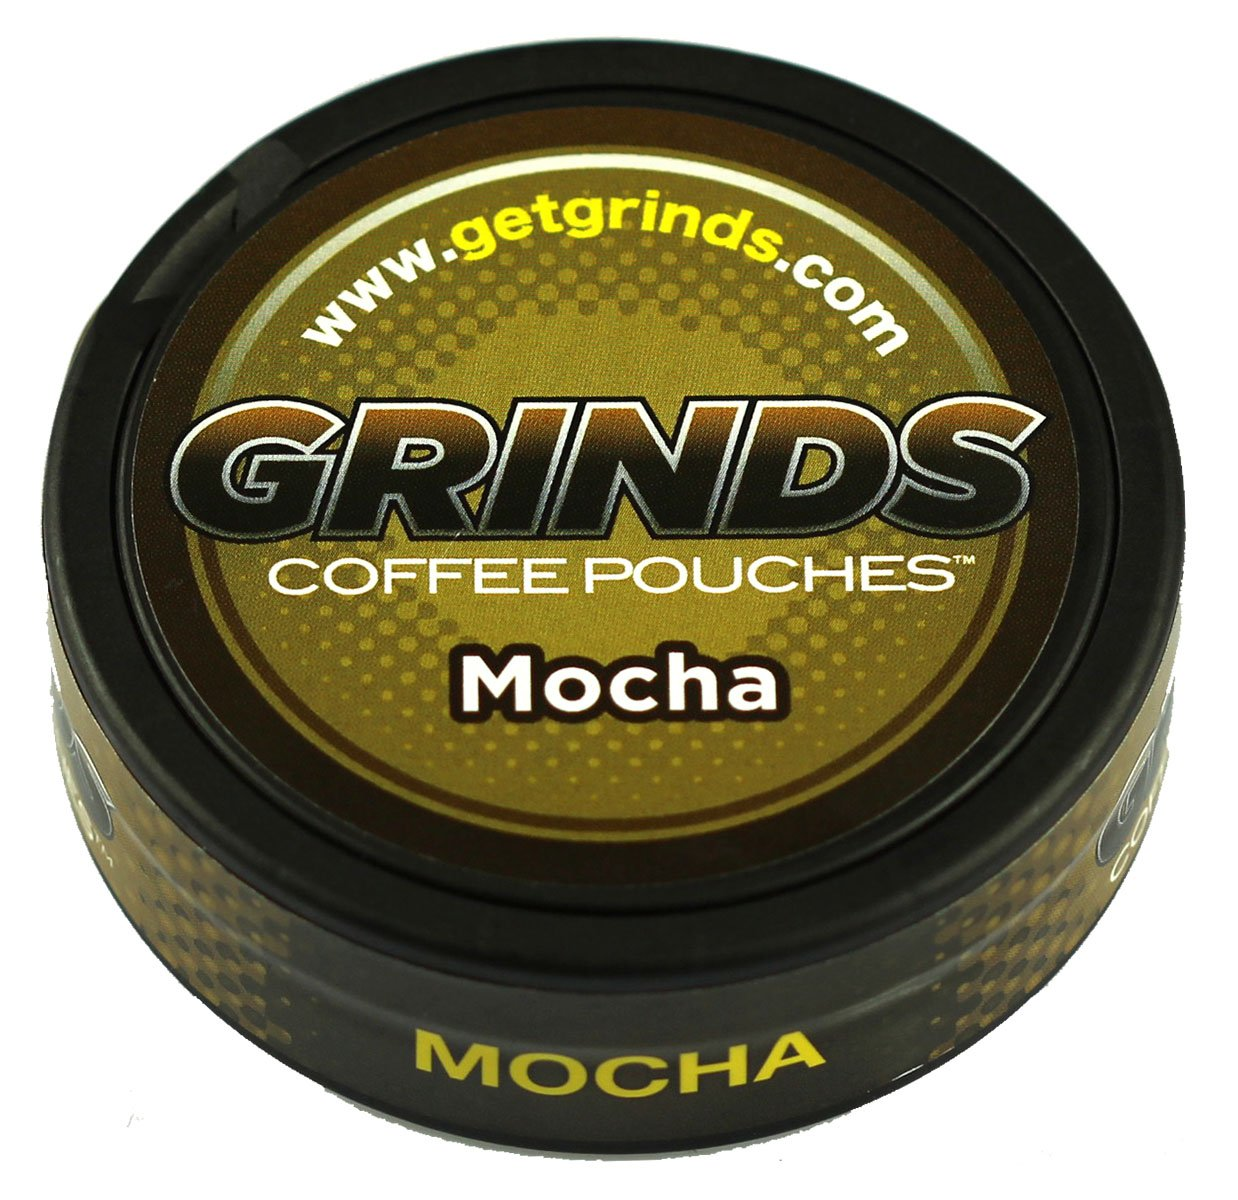 Grinds Coffee Pouches - 3 Cans - Mocha - Tobacco Free, Nicotine Free Healthy Alternative by GRINDS